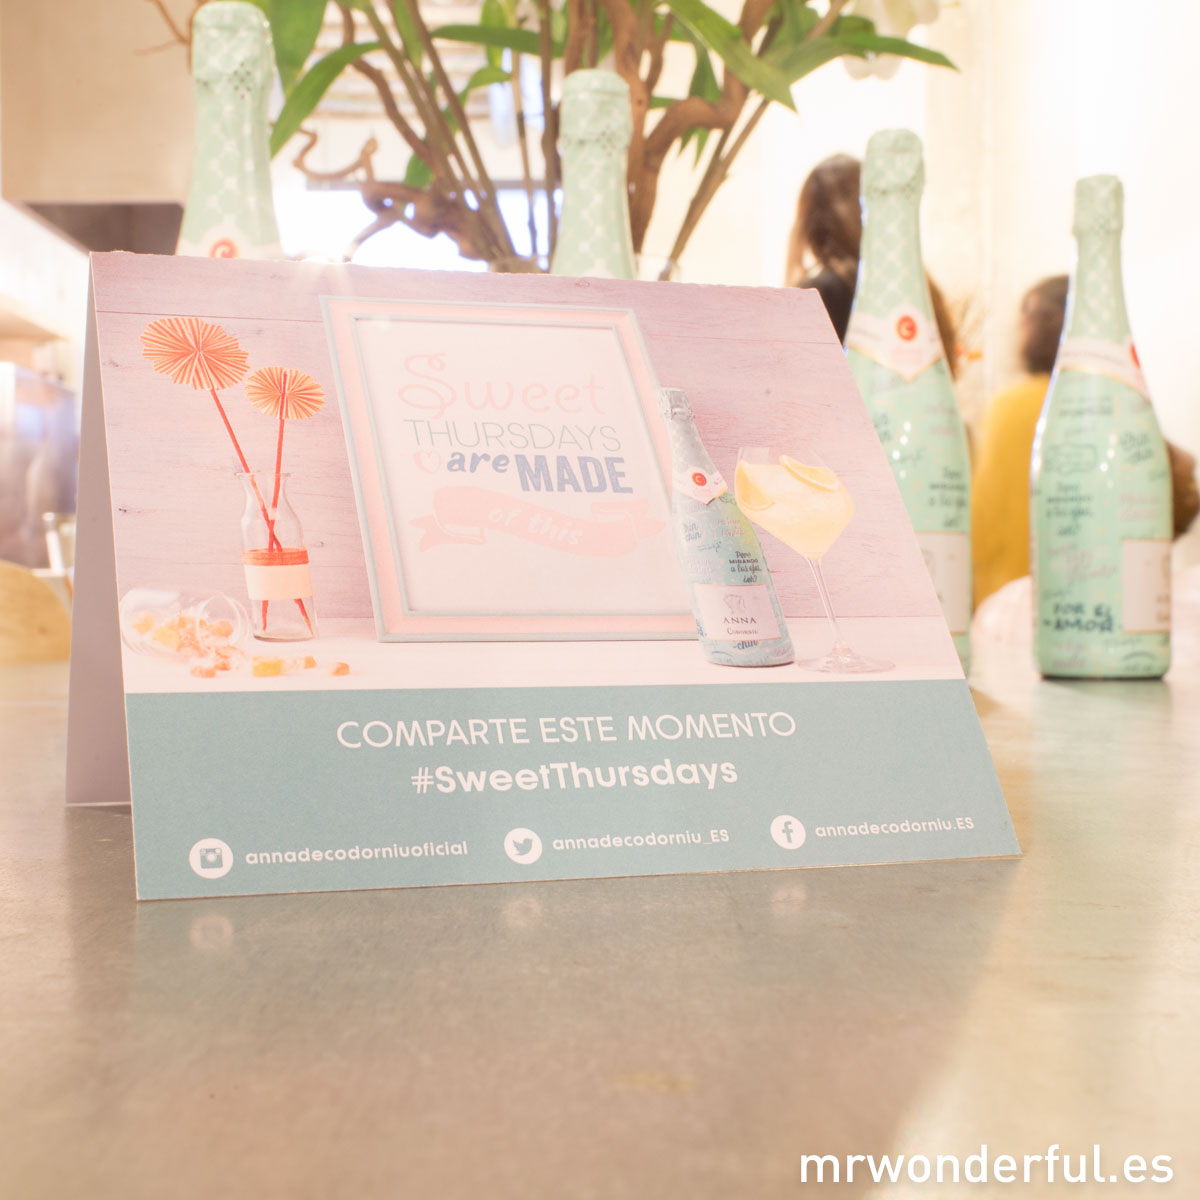 mrwonderful_evento-codorniu-sweet-edition-cocktails_canela-fina-2016-2